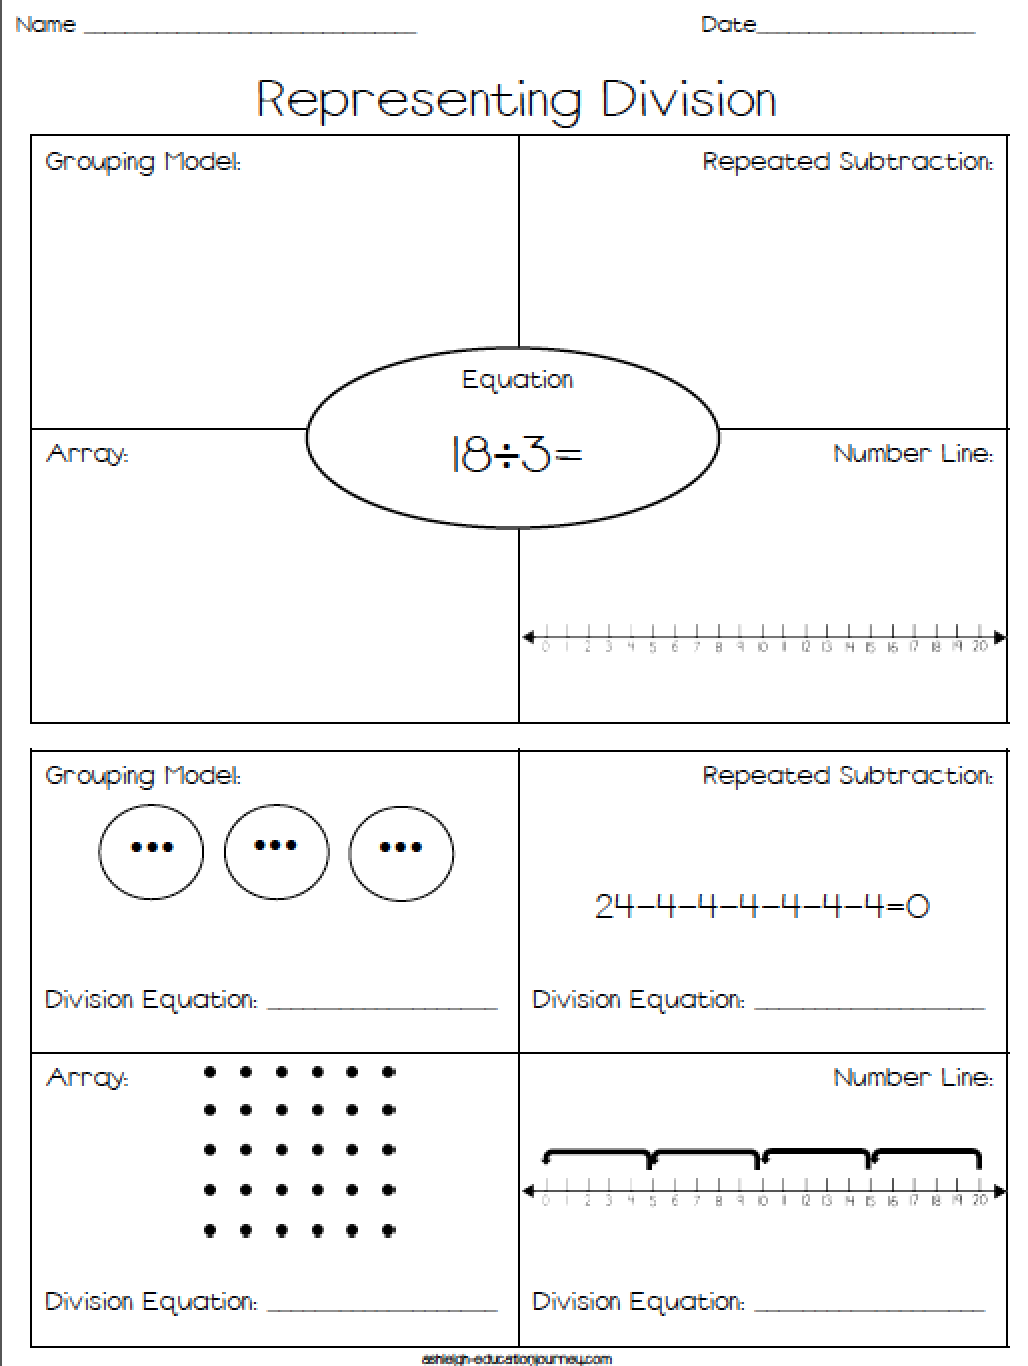 hight resolution of educationjourney: Representing Division   Math division